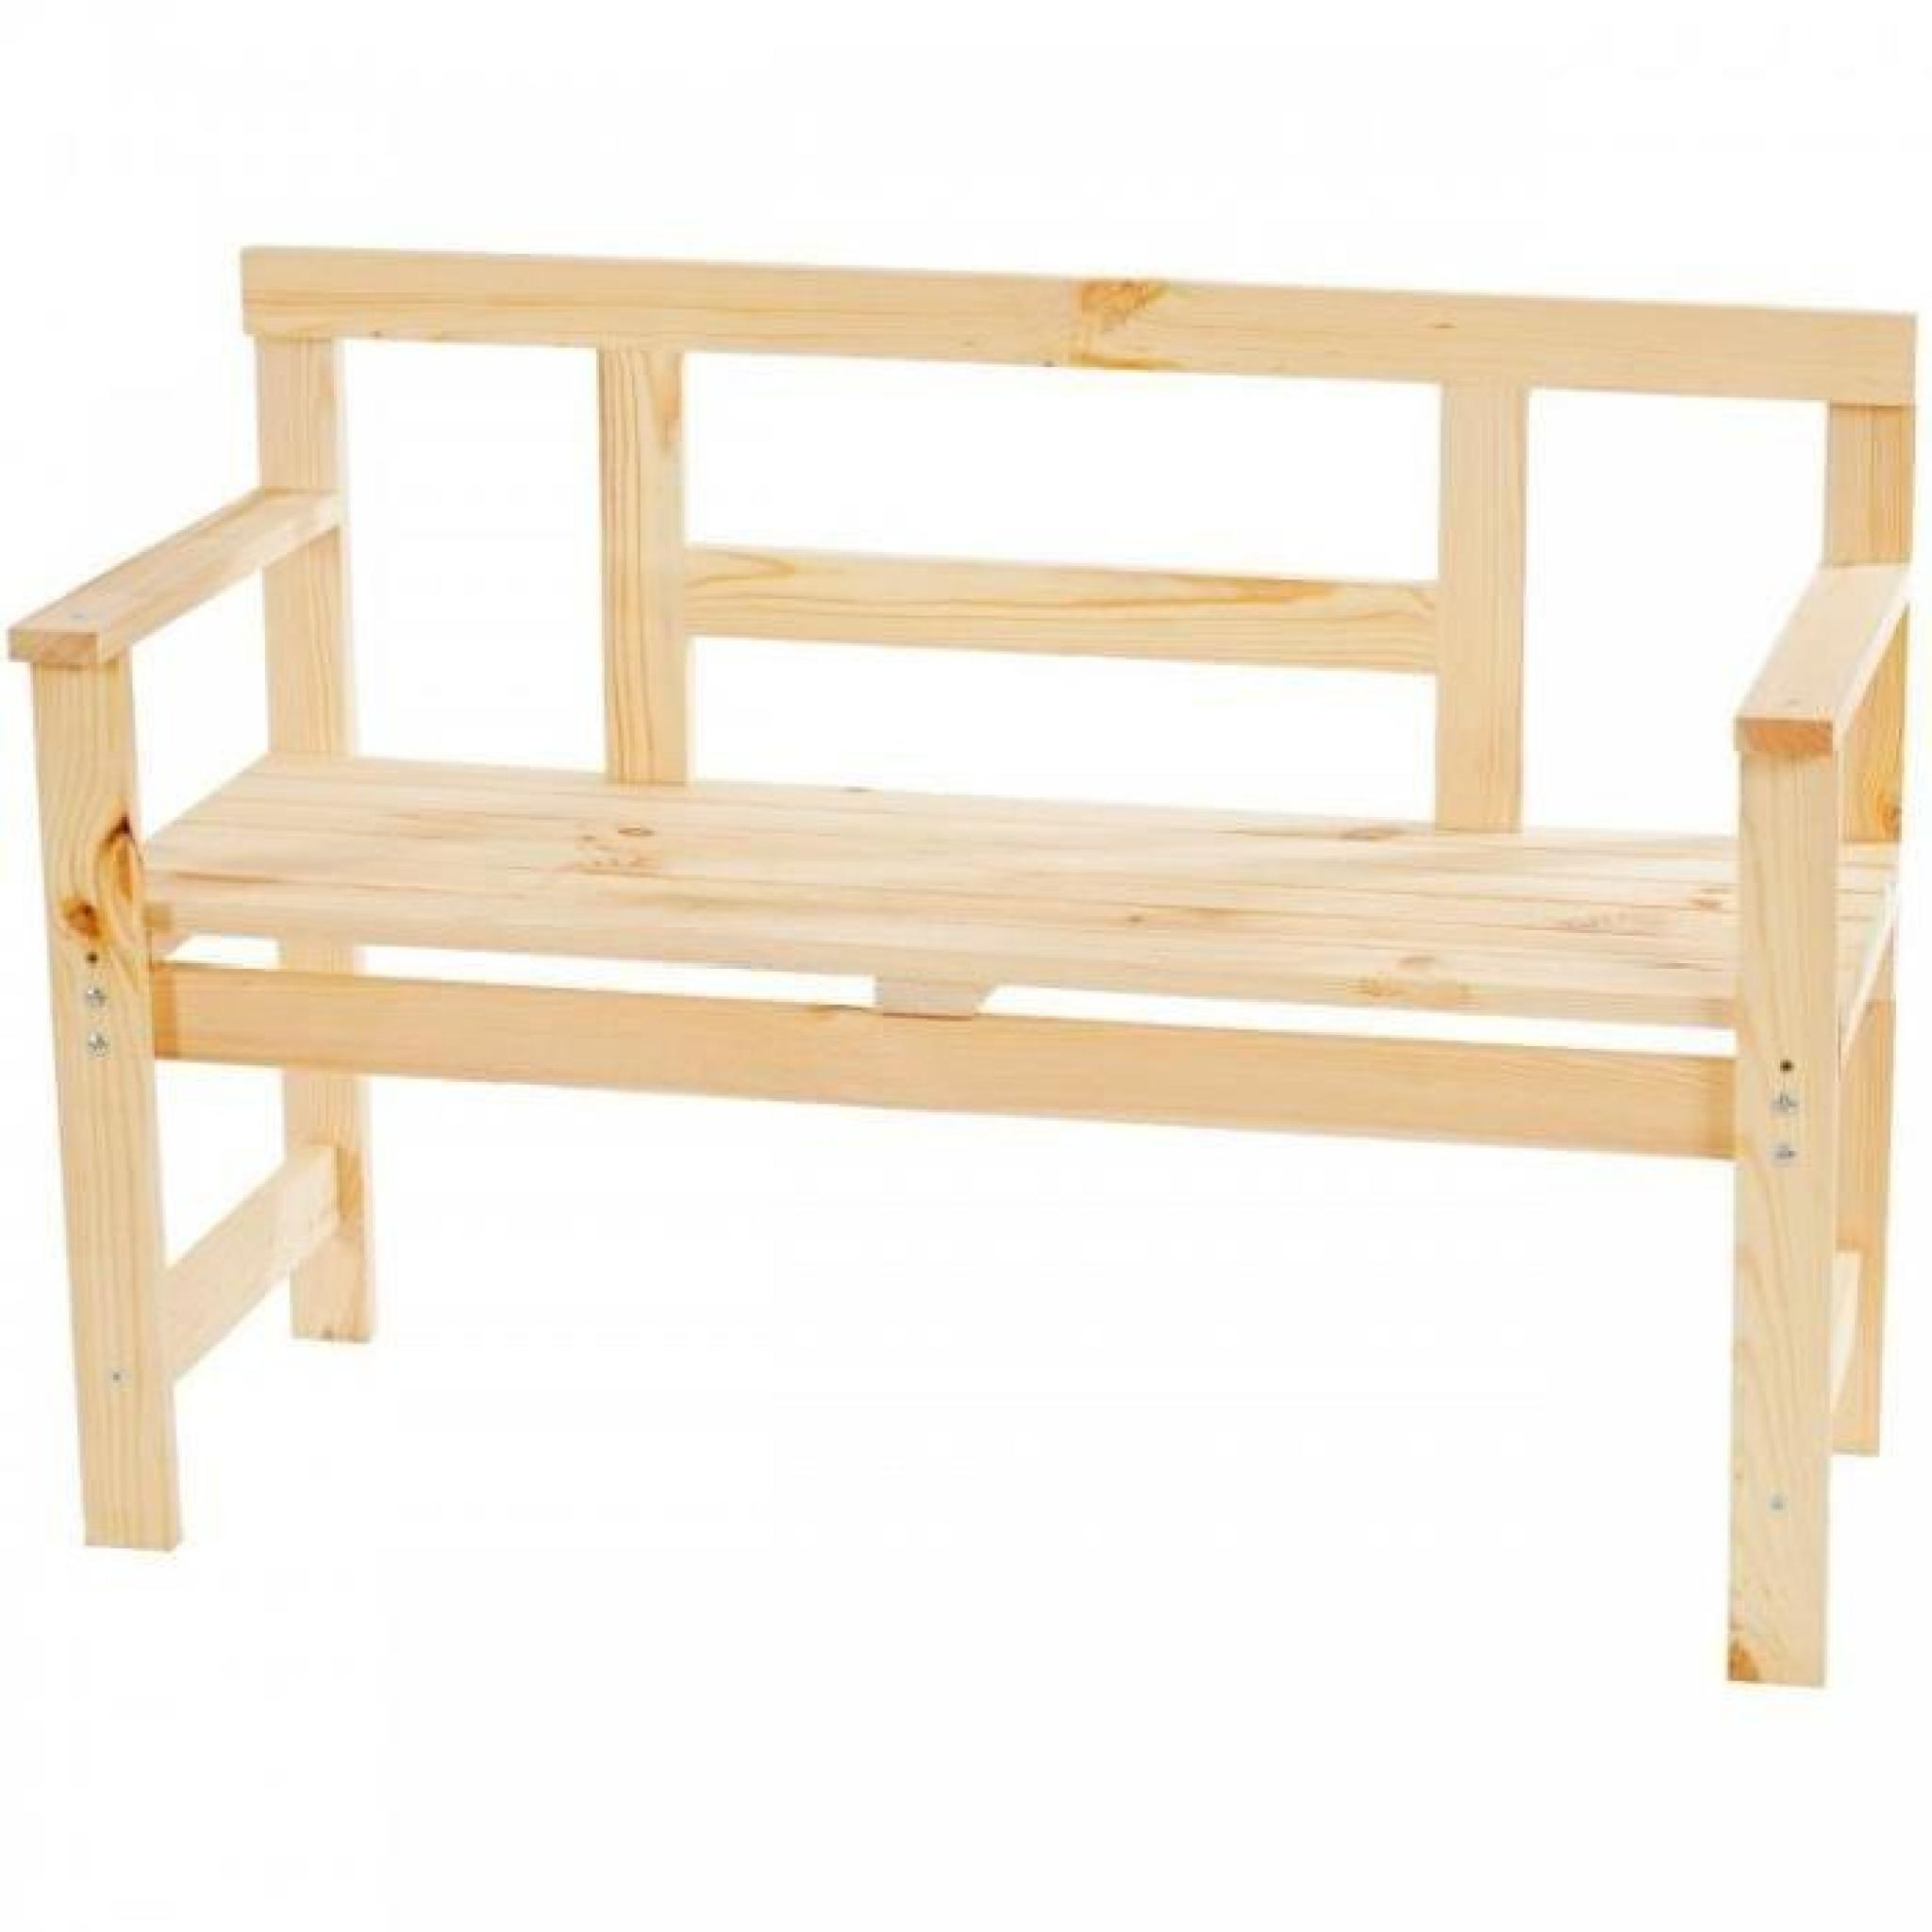 banc de jardin en bois naturel 114cm mdj04070 achat. Black Bedroom Furniture Sets. Home Design Ideas